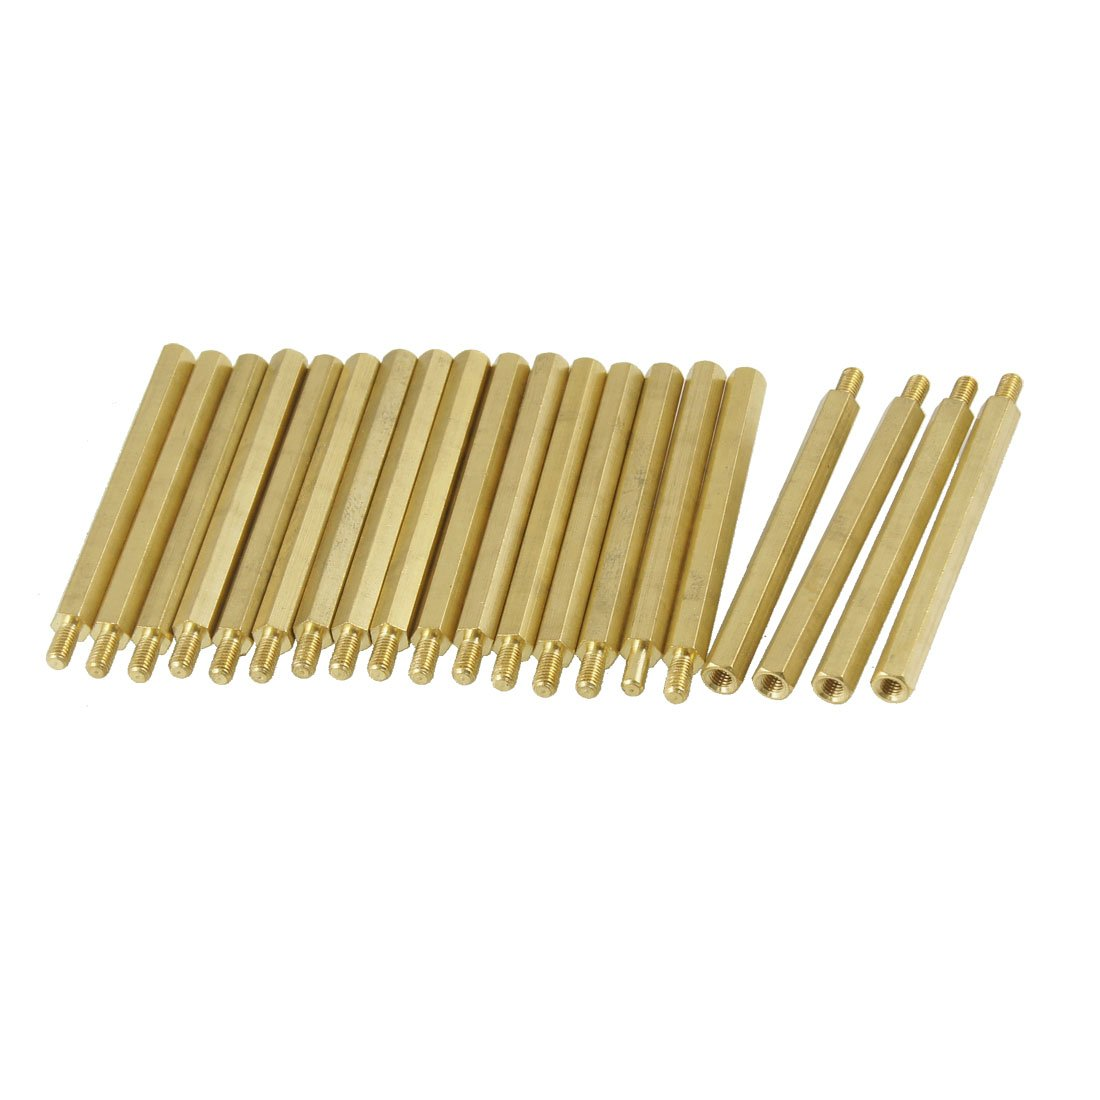 NFLC 20 Pcs M3 Male x M3 Female Hexagonal Thread PCB Standoff Spacer 50mm Body Length m4 male m 25 30 35 40 45 50 55 60 mm x m4 6mm female brass standoff spacer copper hexagonal stud spacer hollow pillars